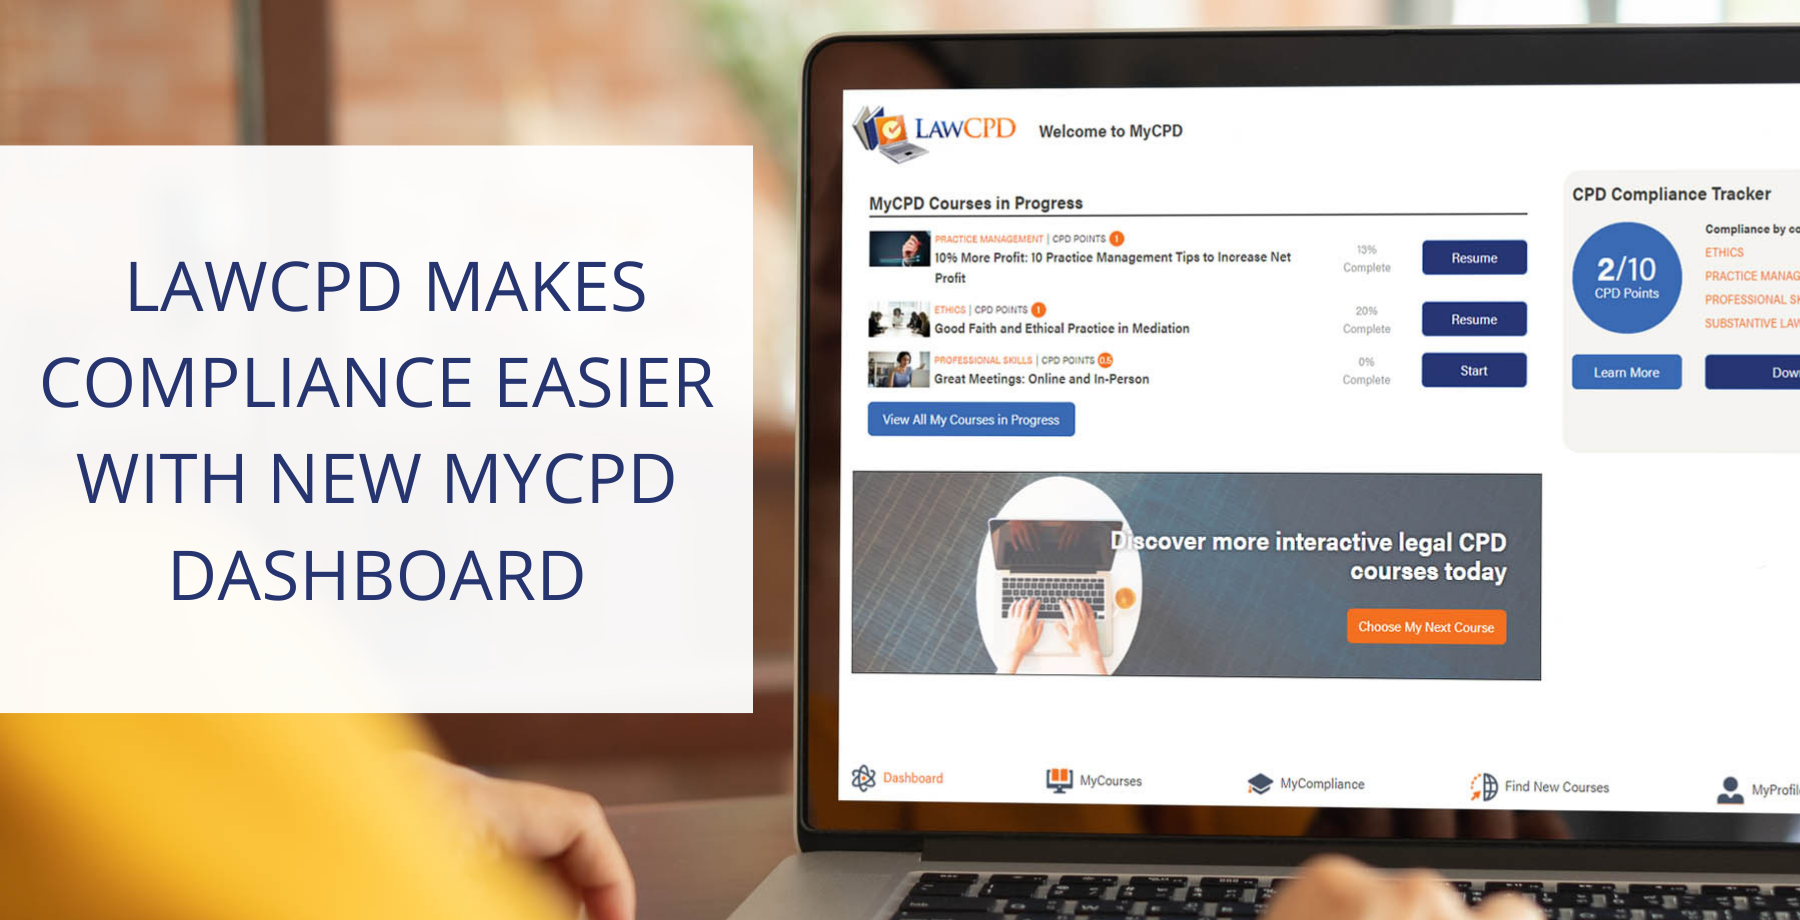 Lawyer accesses LawCPD new MyCPD dashboard to get legal CPD compliant.